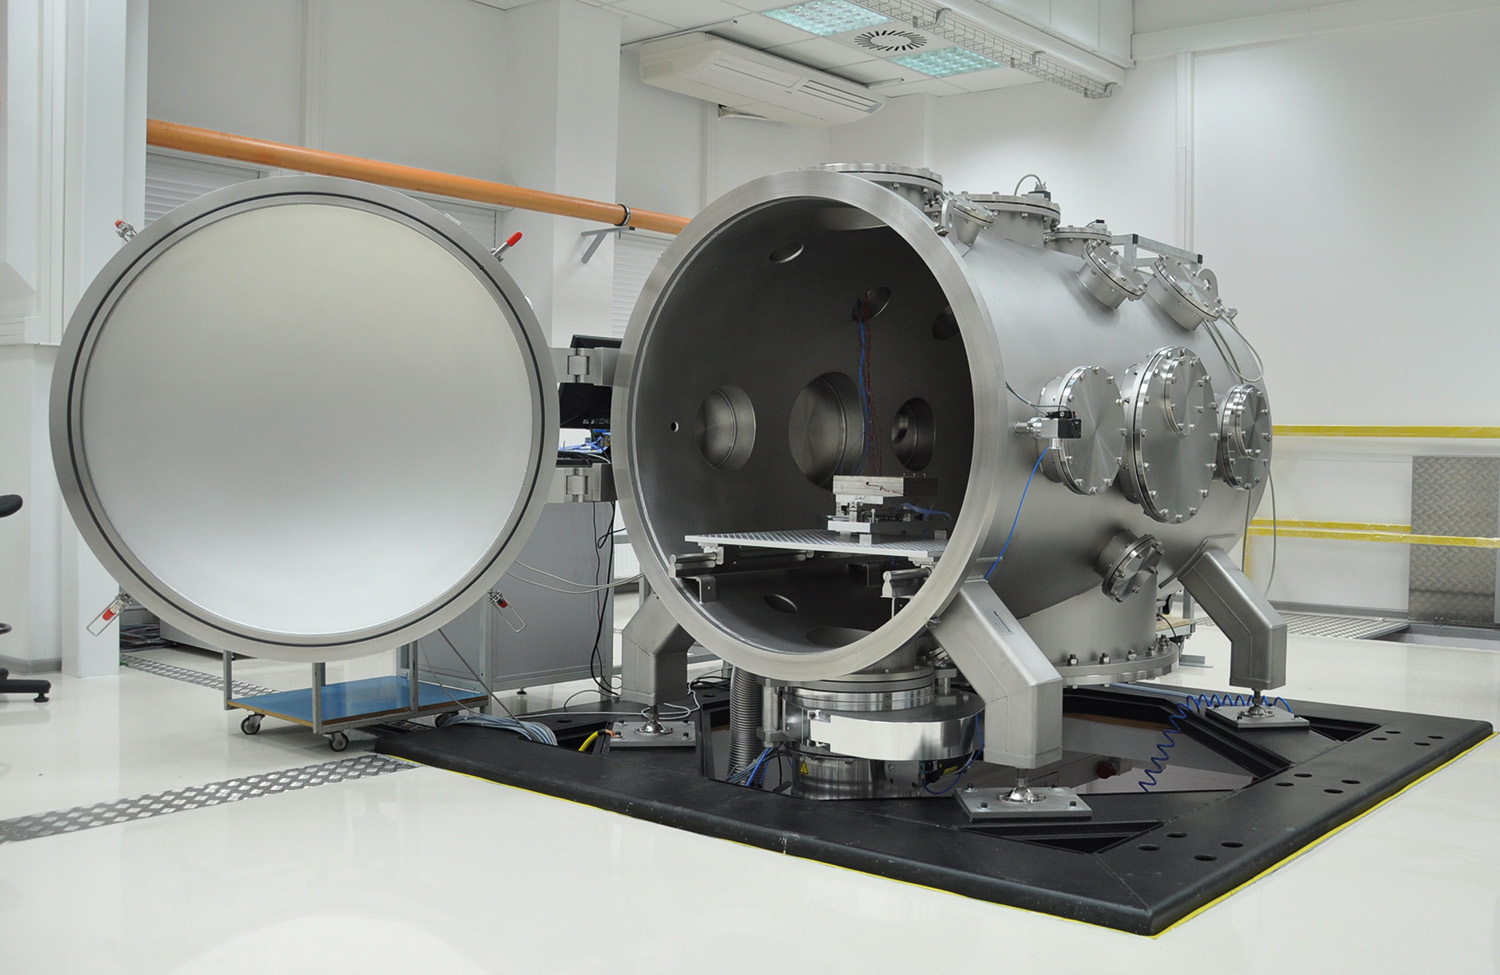 The chamber is shrouded with a cleanroom-compatible insulation